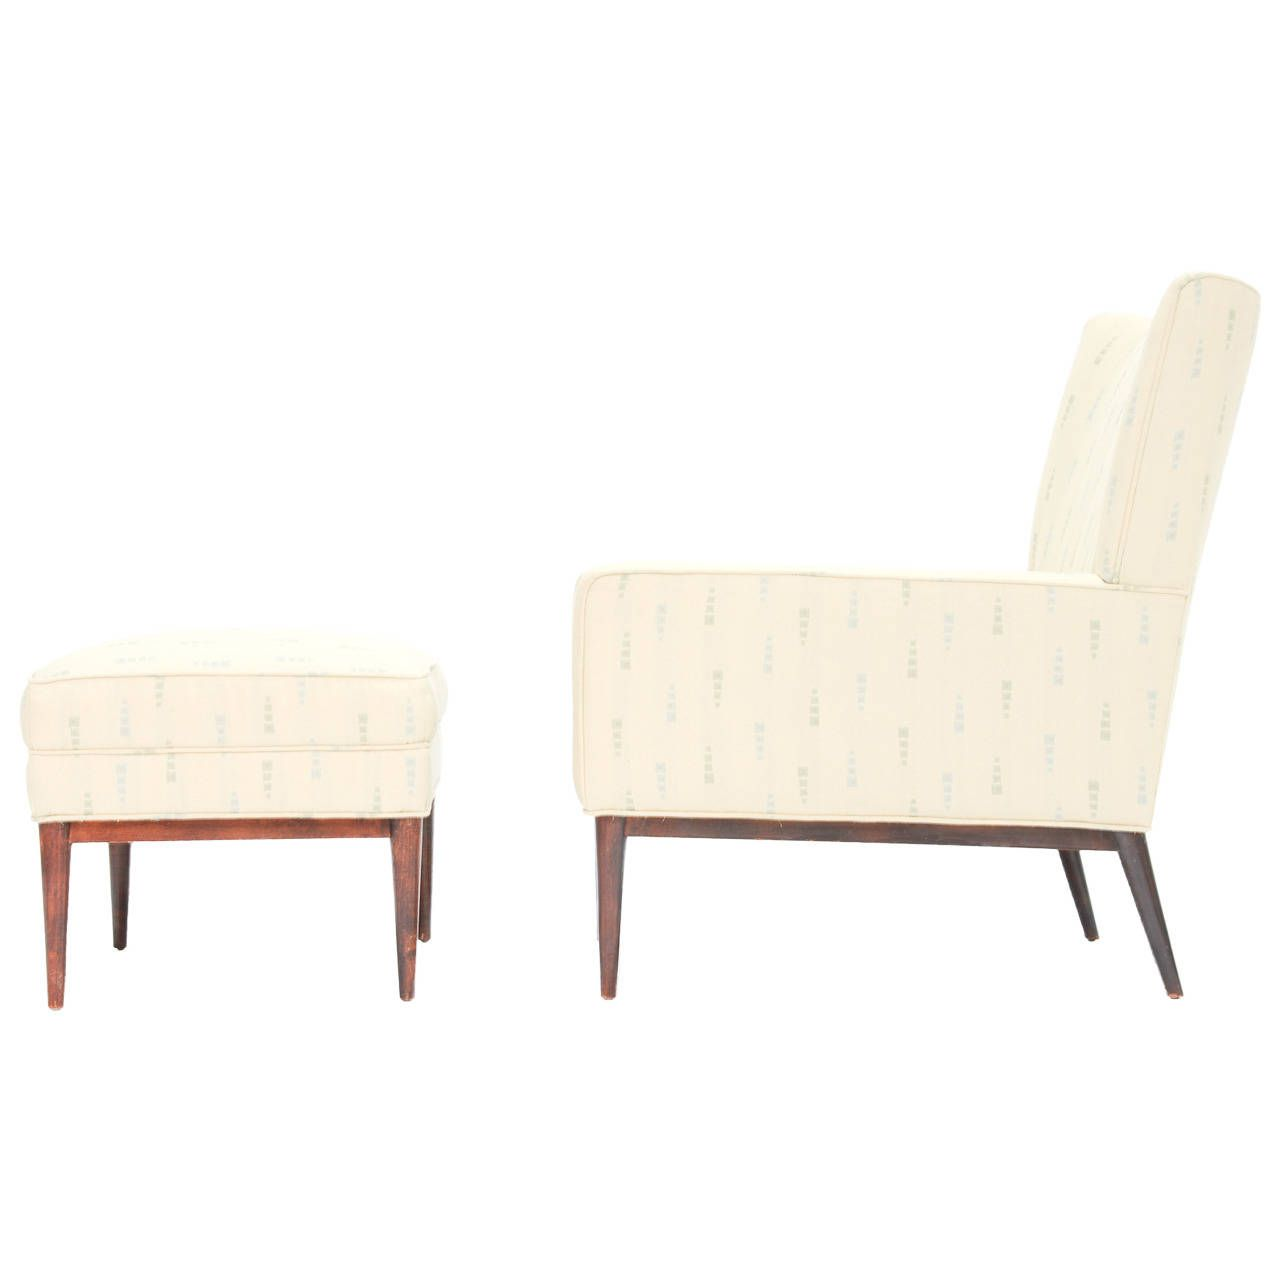 7060b39d0645 Paul McCobb 1312 High Back Club Chair and 314 Ottoman for Directional  Furniture